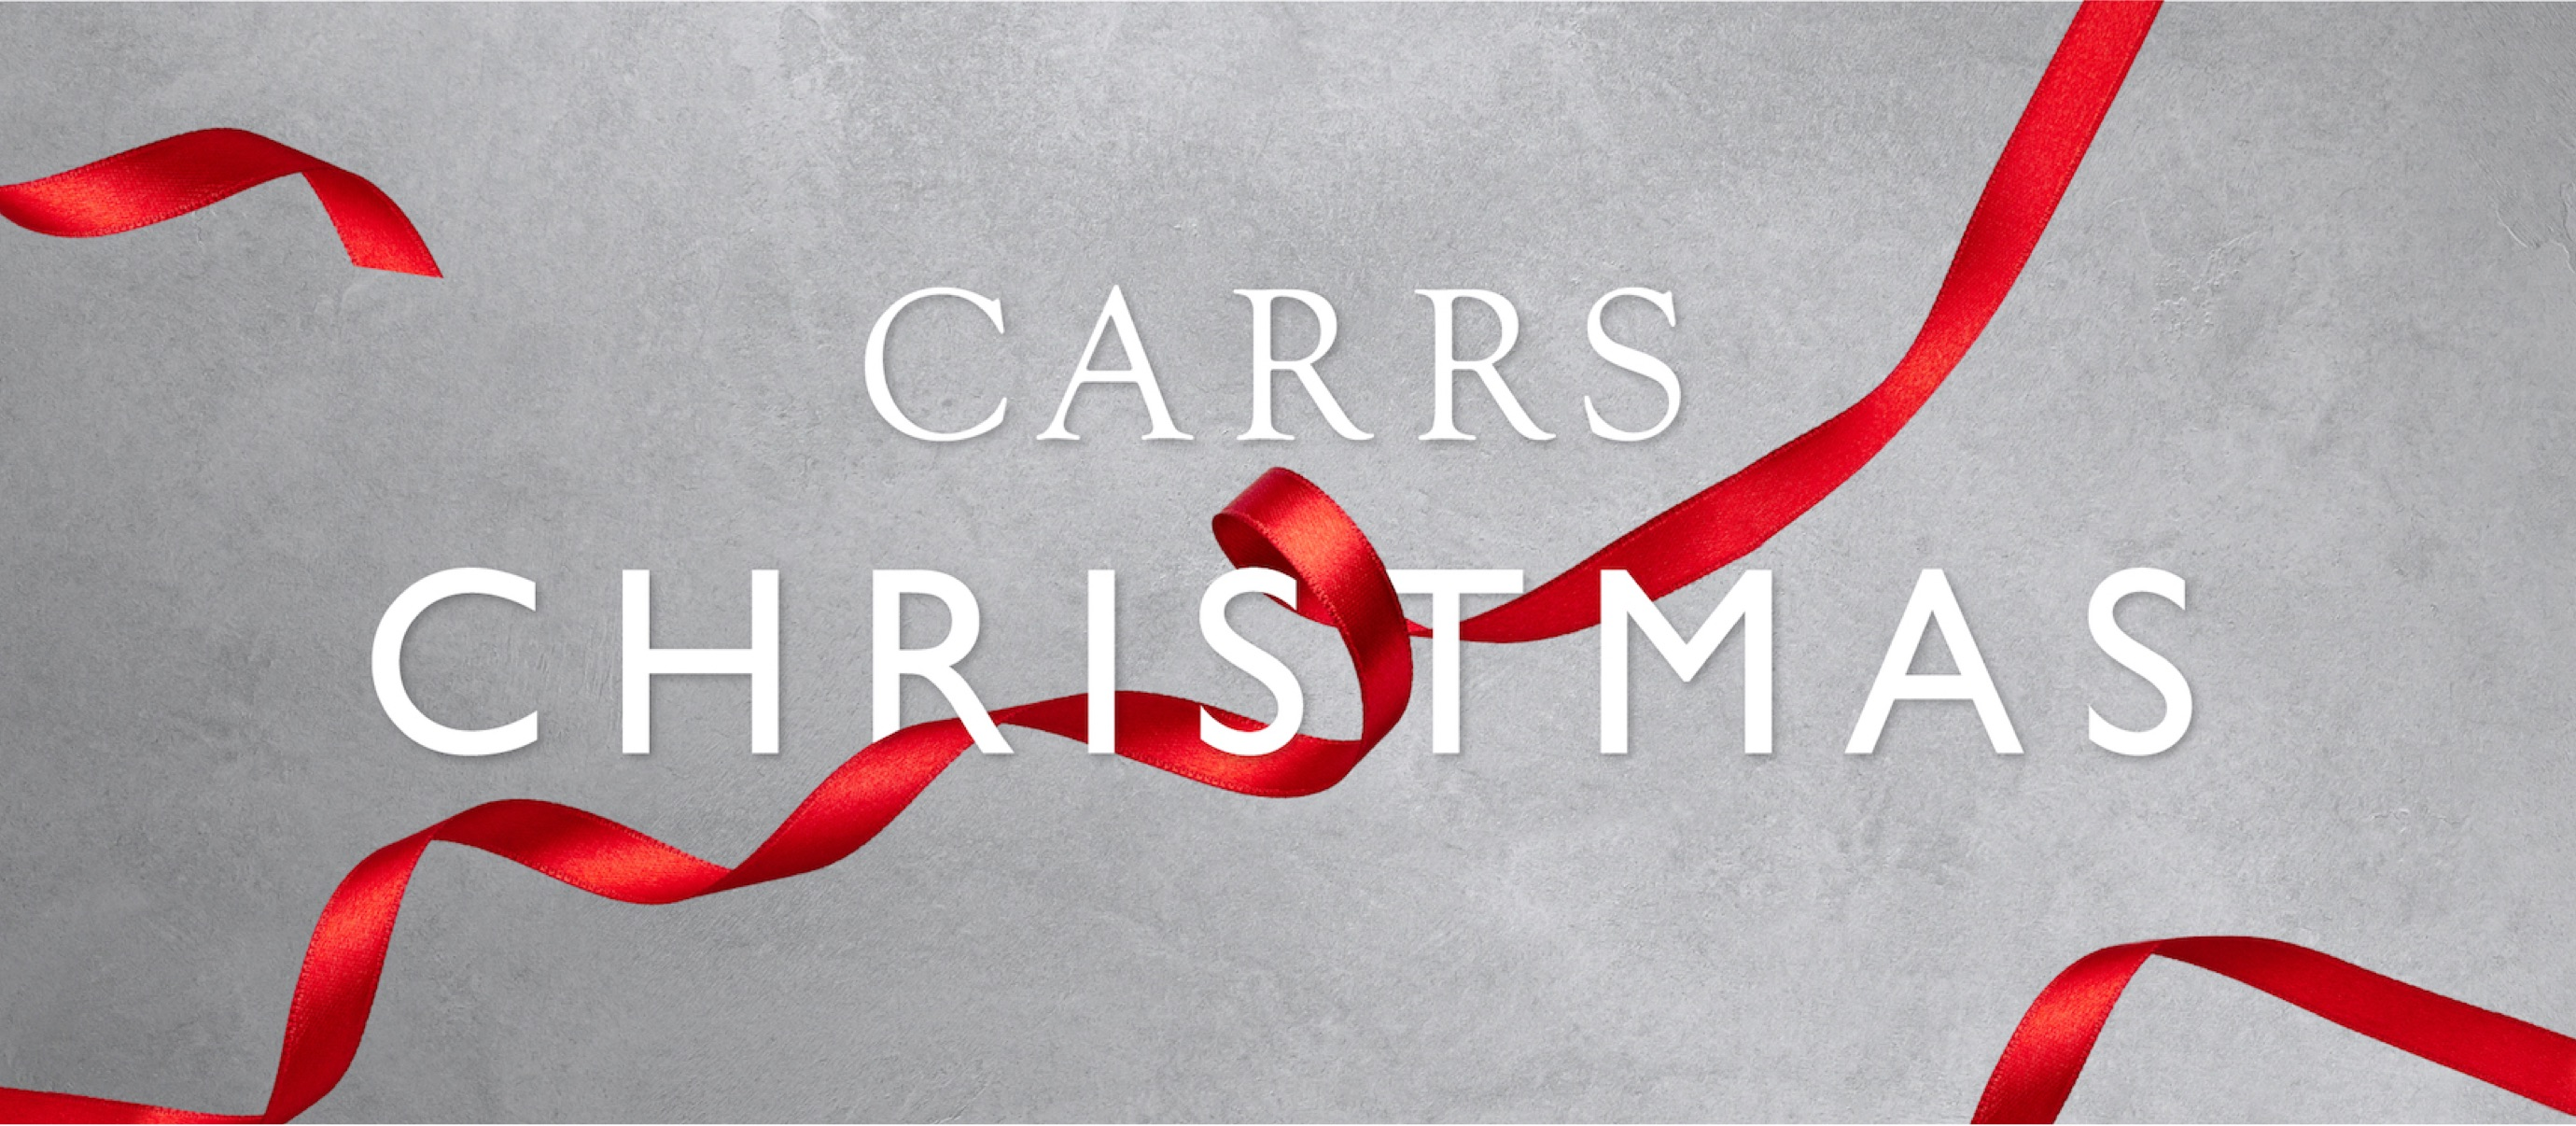 Carrs at Christmas campaign